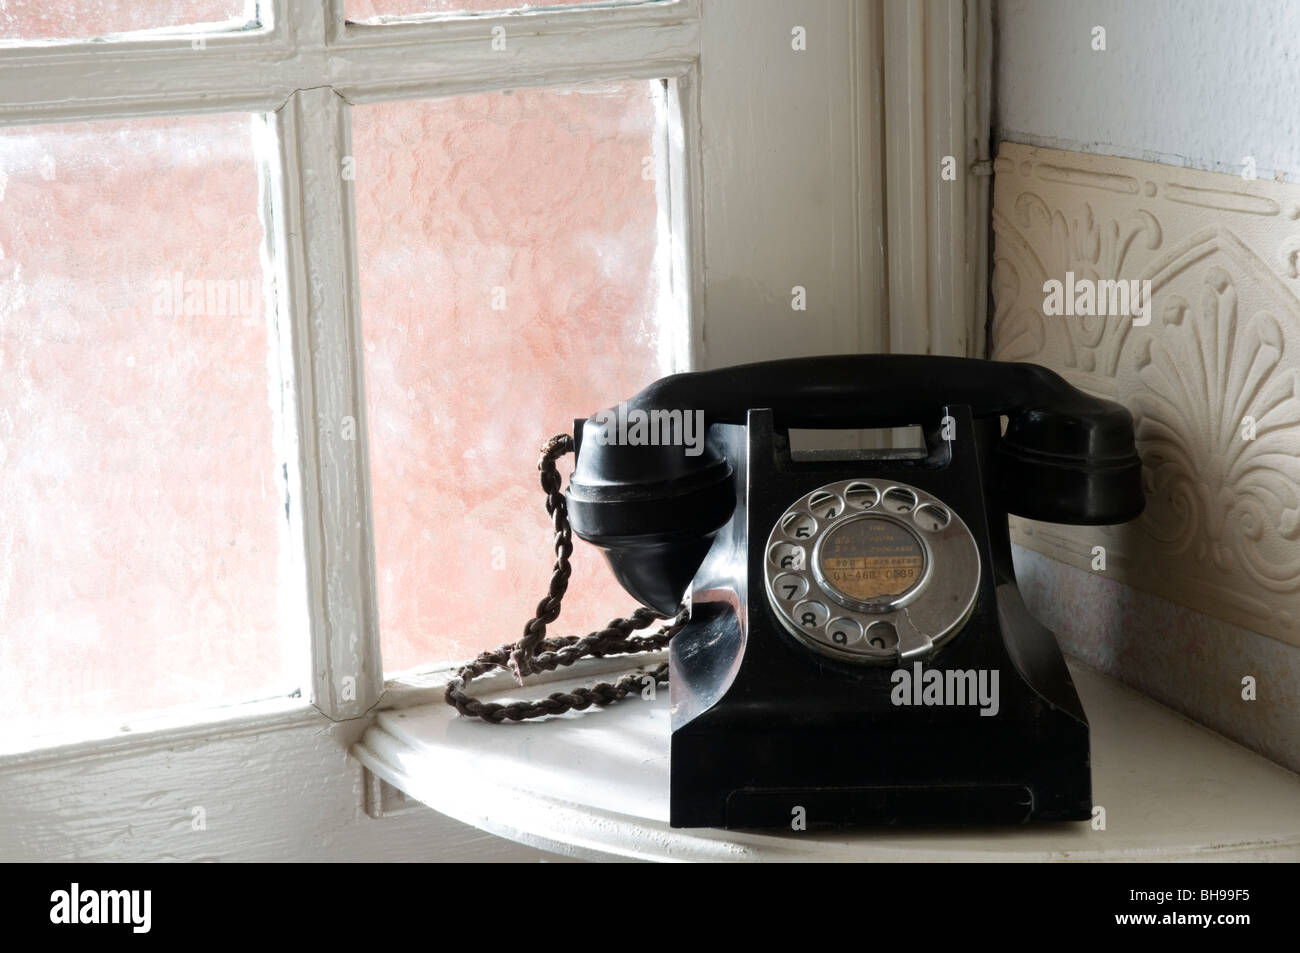 An old-fashioned Bakelite telephone. - Stock Image